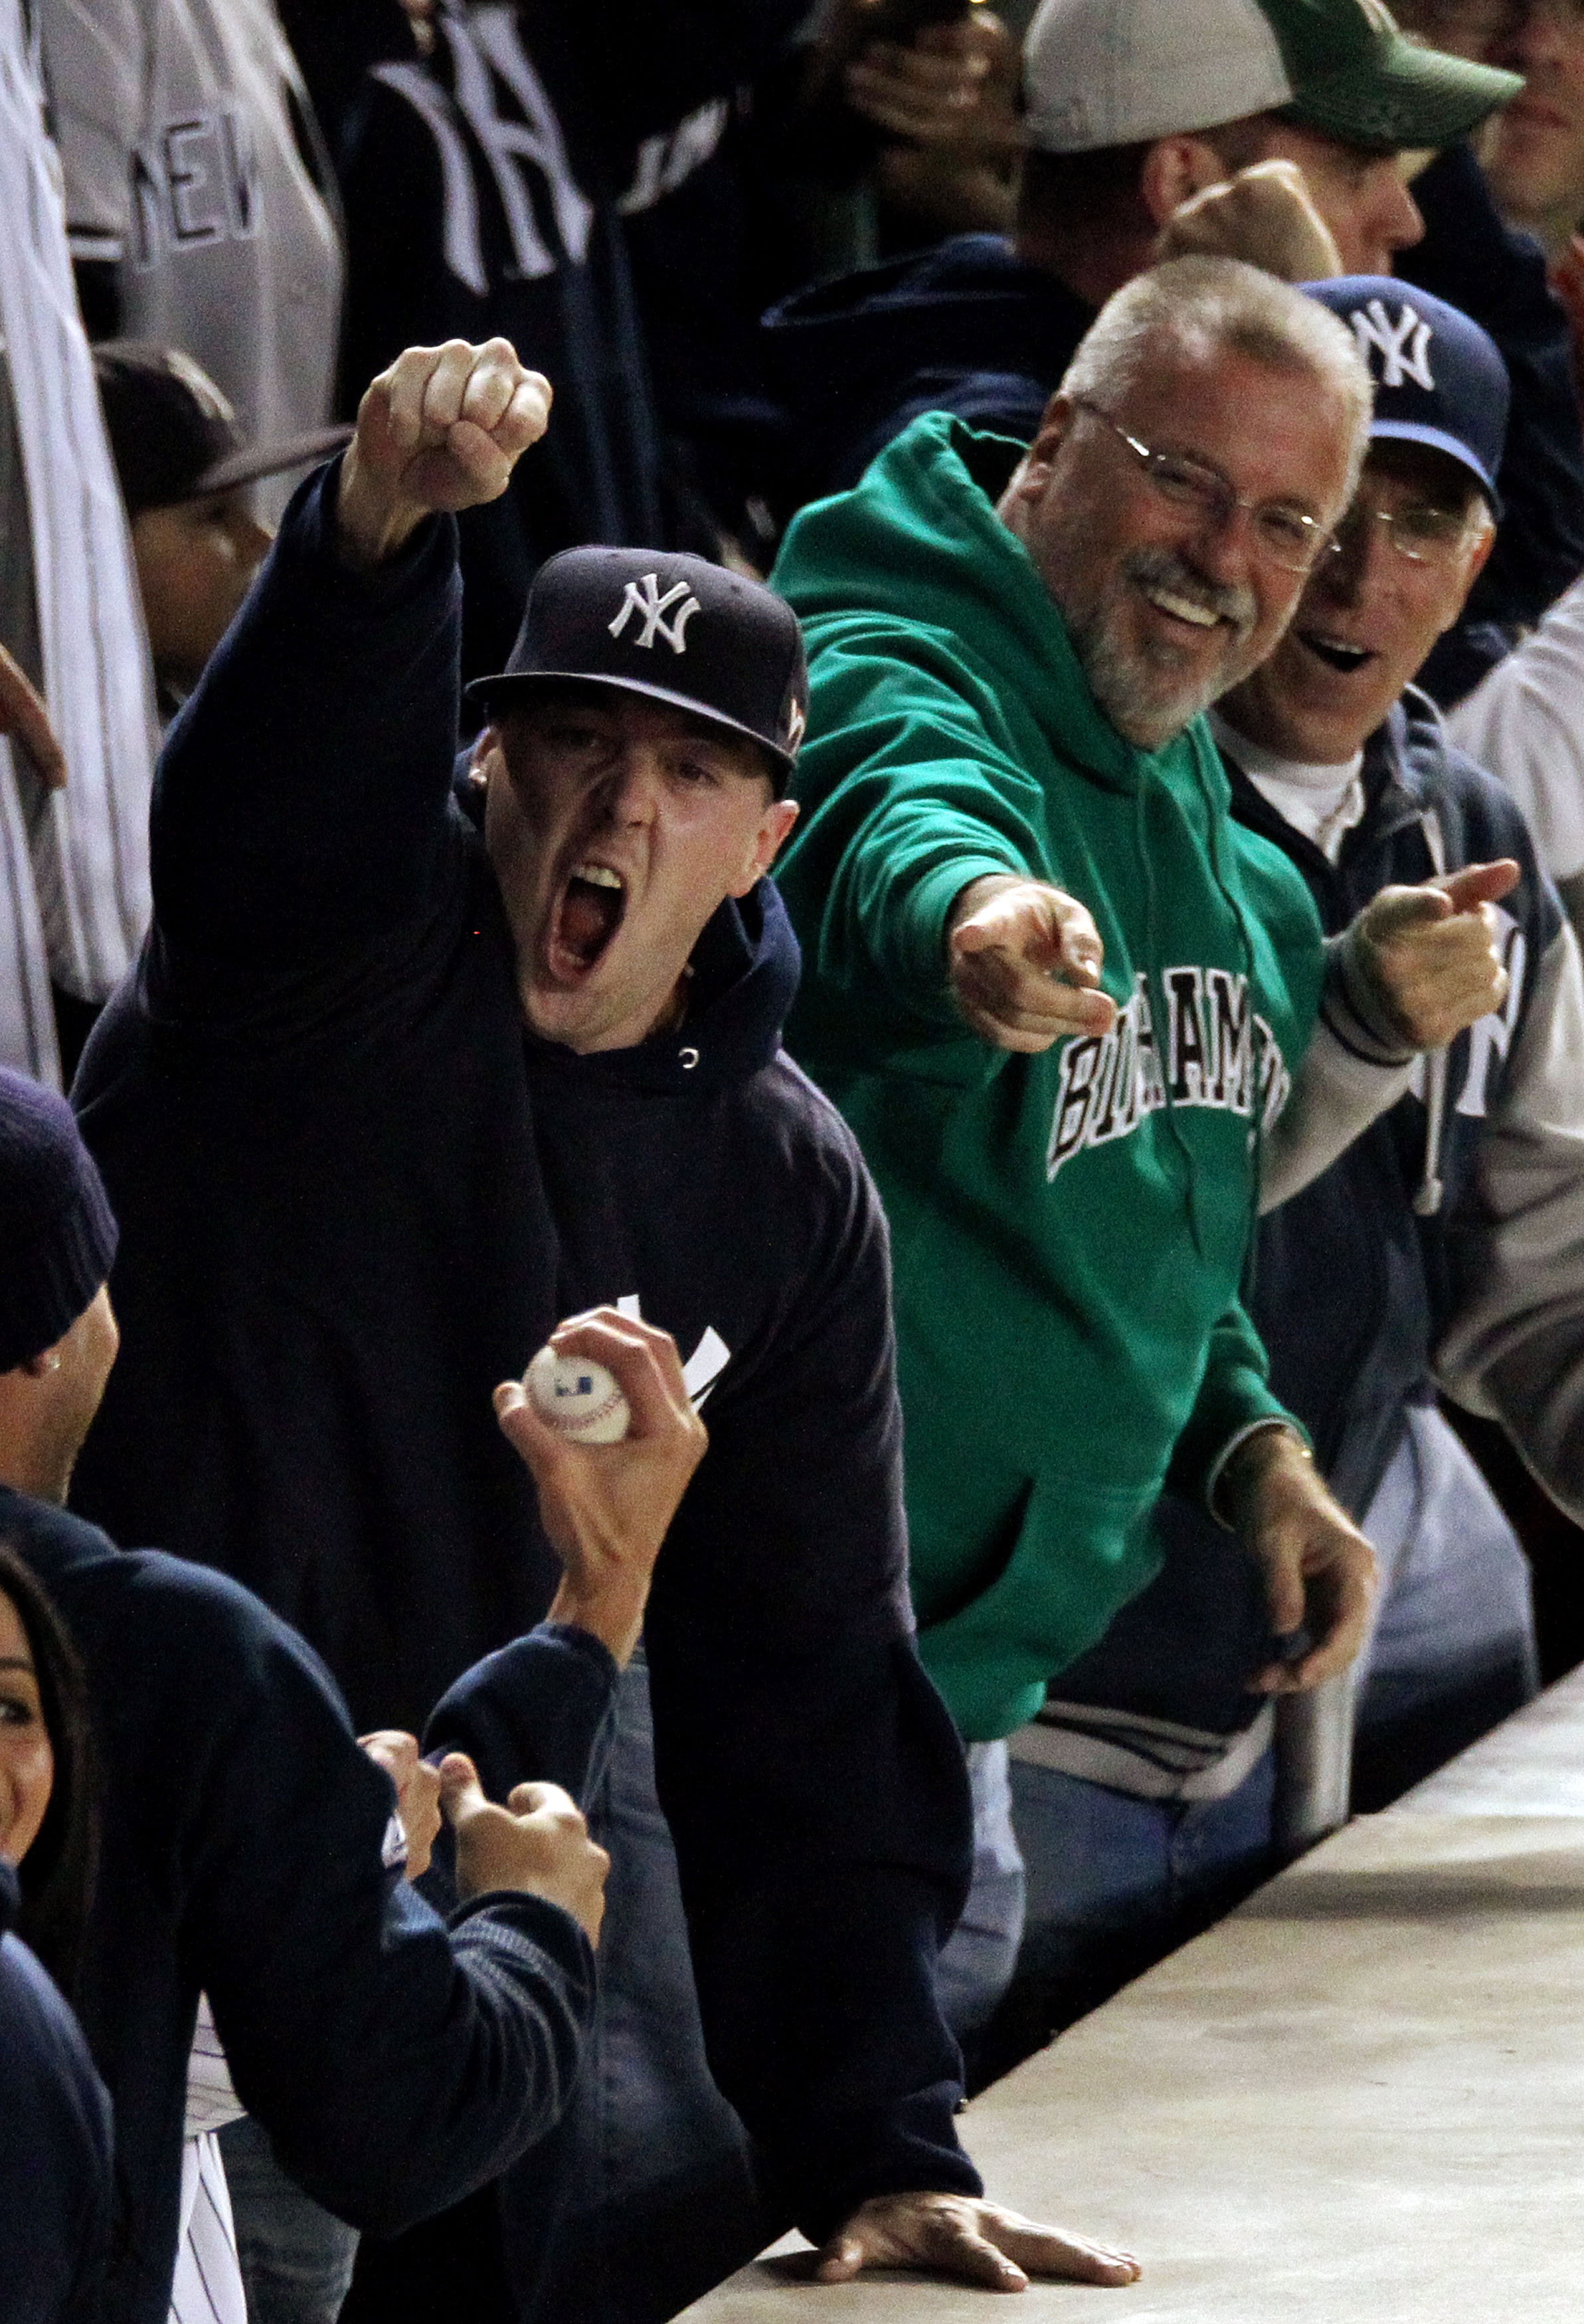 NEW YORK - OCTOBER 19:  A fan of the New York Yankees reacts after catching a home run ball hit by Robinson Cano #24 of the Yankees in the bottom of the seocnd inning against the Texas Rangers in Game Four of the ALCS during the 2010 MLB Playoffs at Yanke